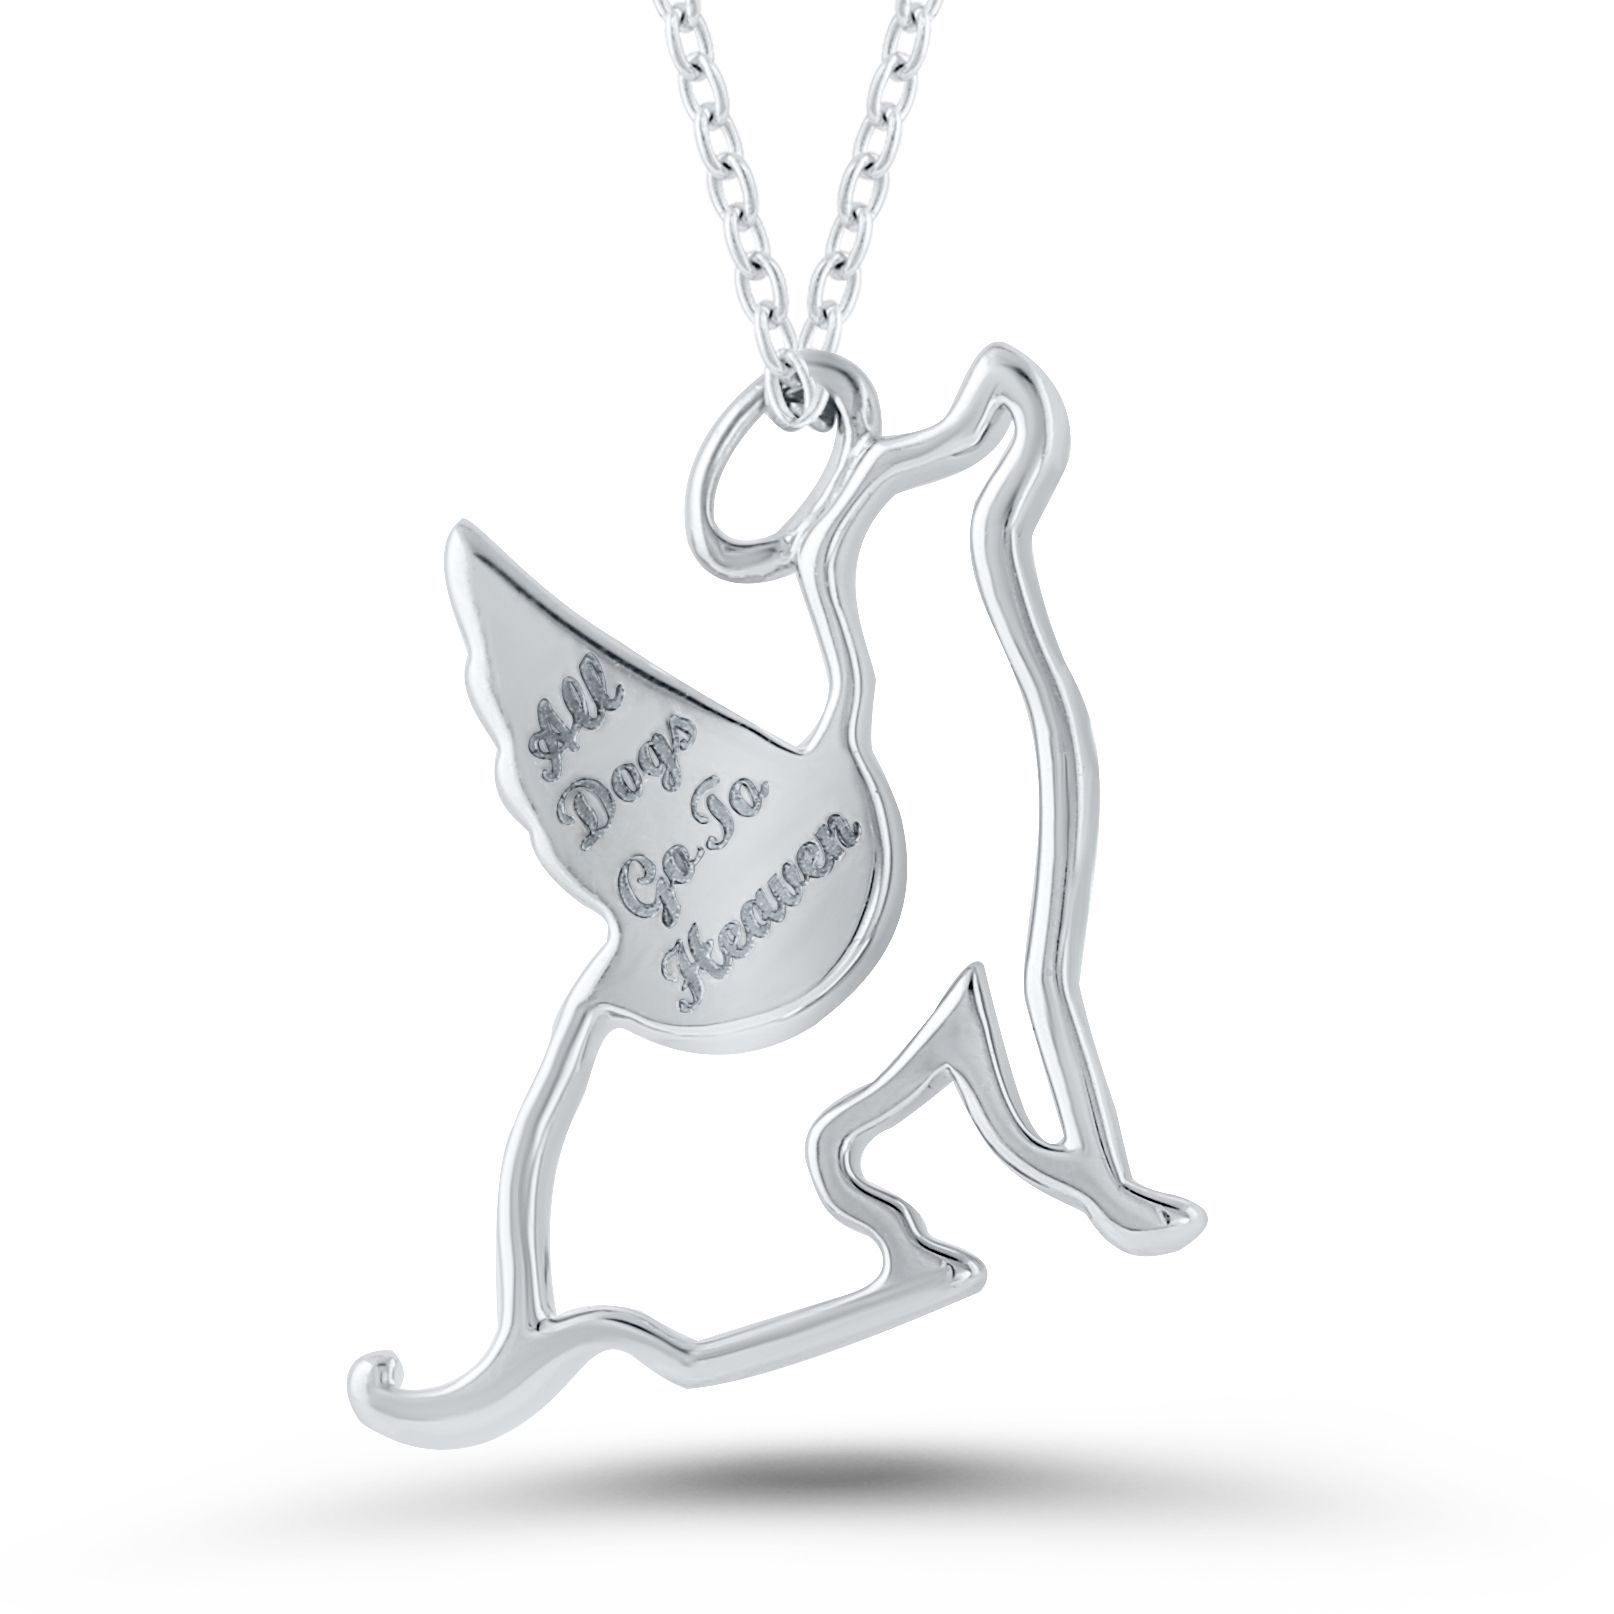 USA Sterling Silver Diamond Accent 'All Dogs Go To Heaven' Pendant